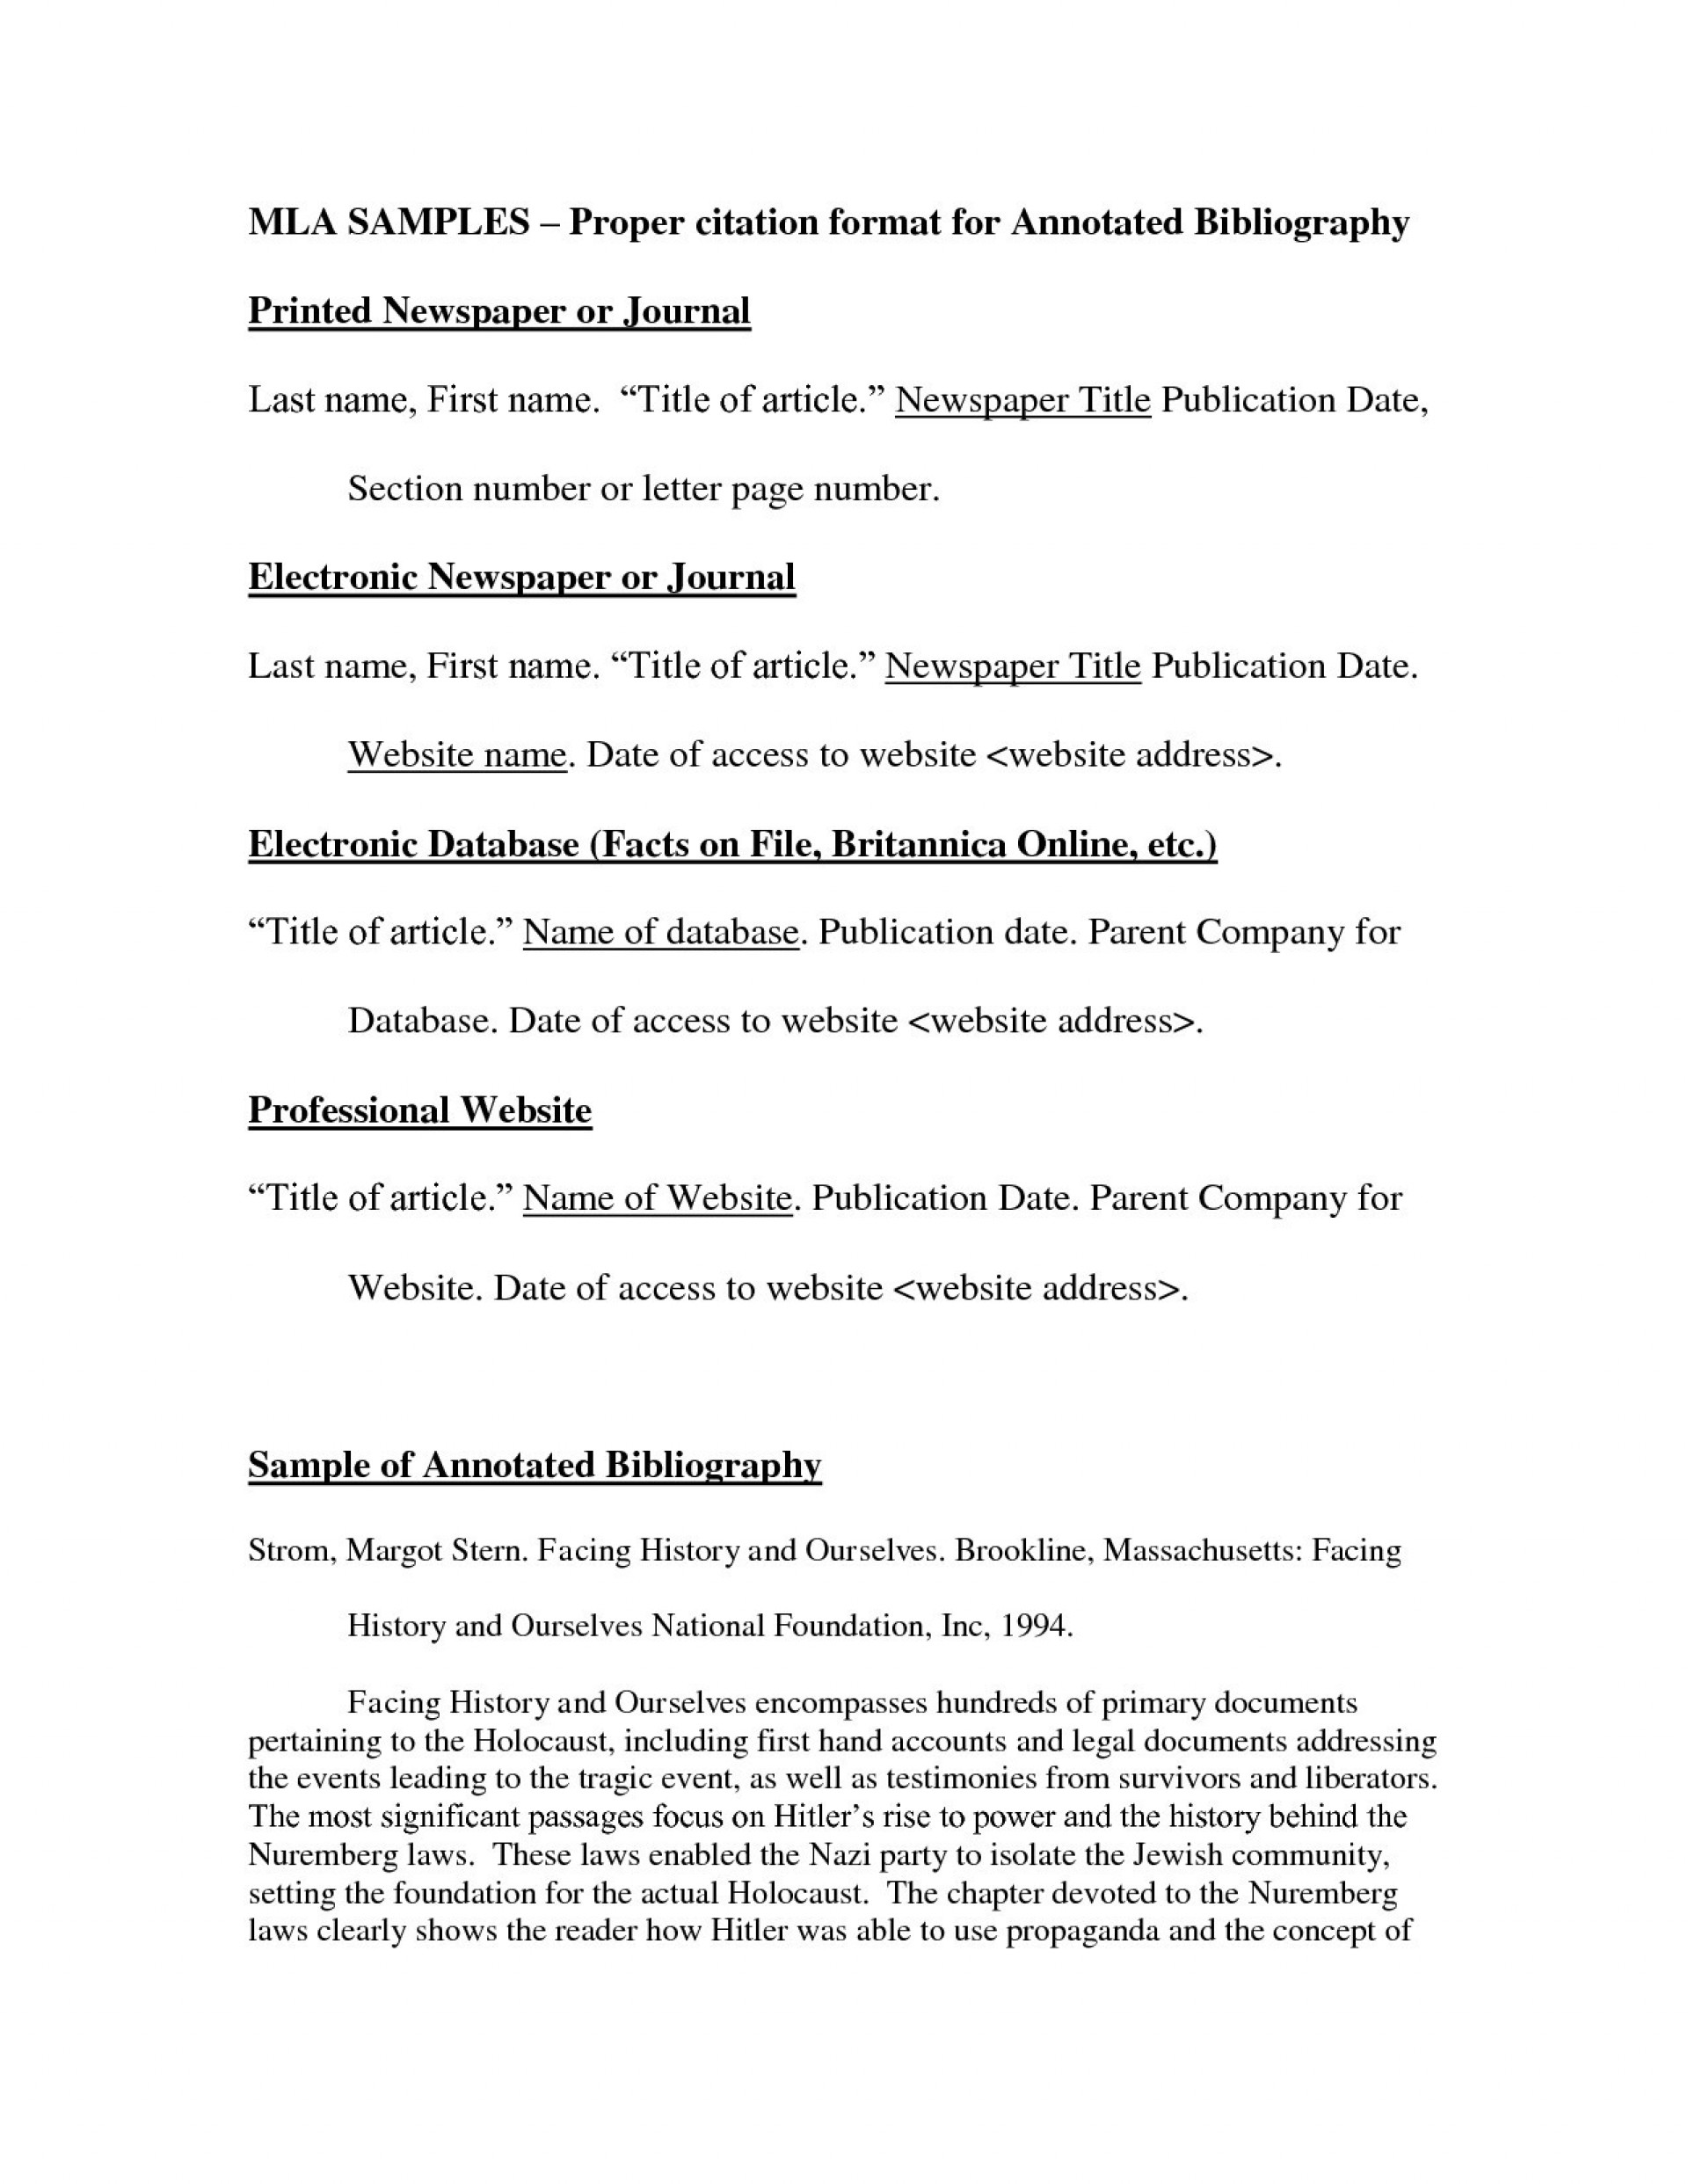 018 Bunch Ideas Of Images Mla Format Reference Page Template Sample Essay With Citations Scarlet Letter Inspirationa Works Cited Best Citin Paper Cover Example Annotated Bibliography 1920